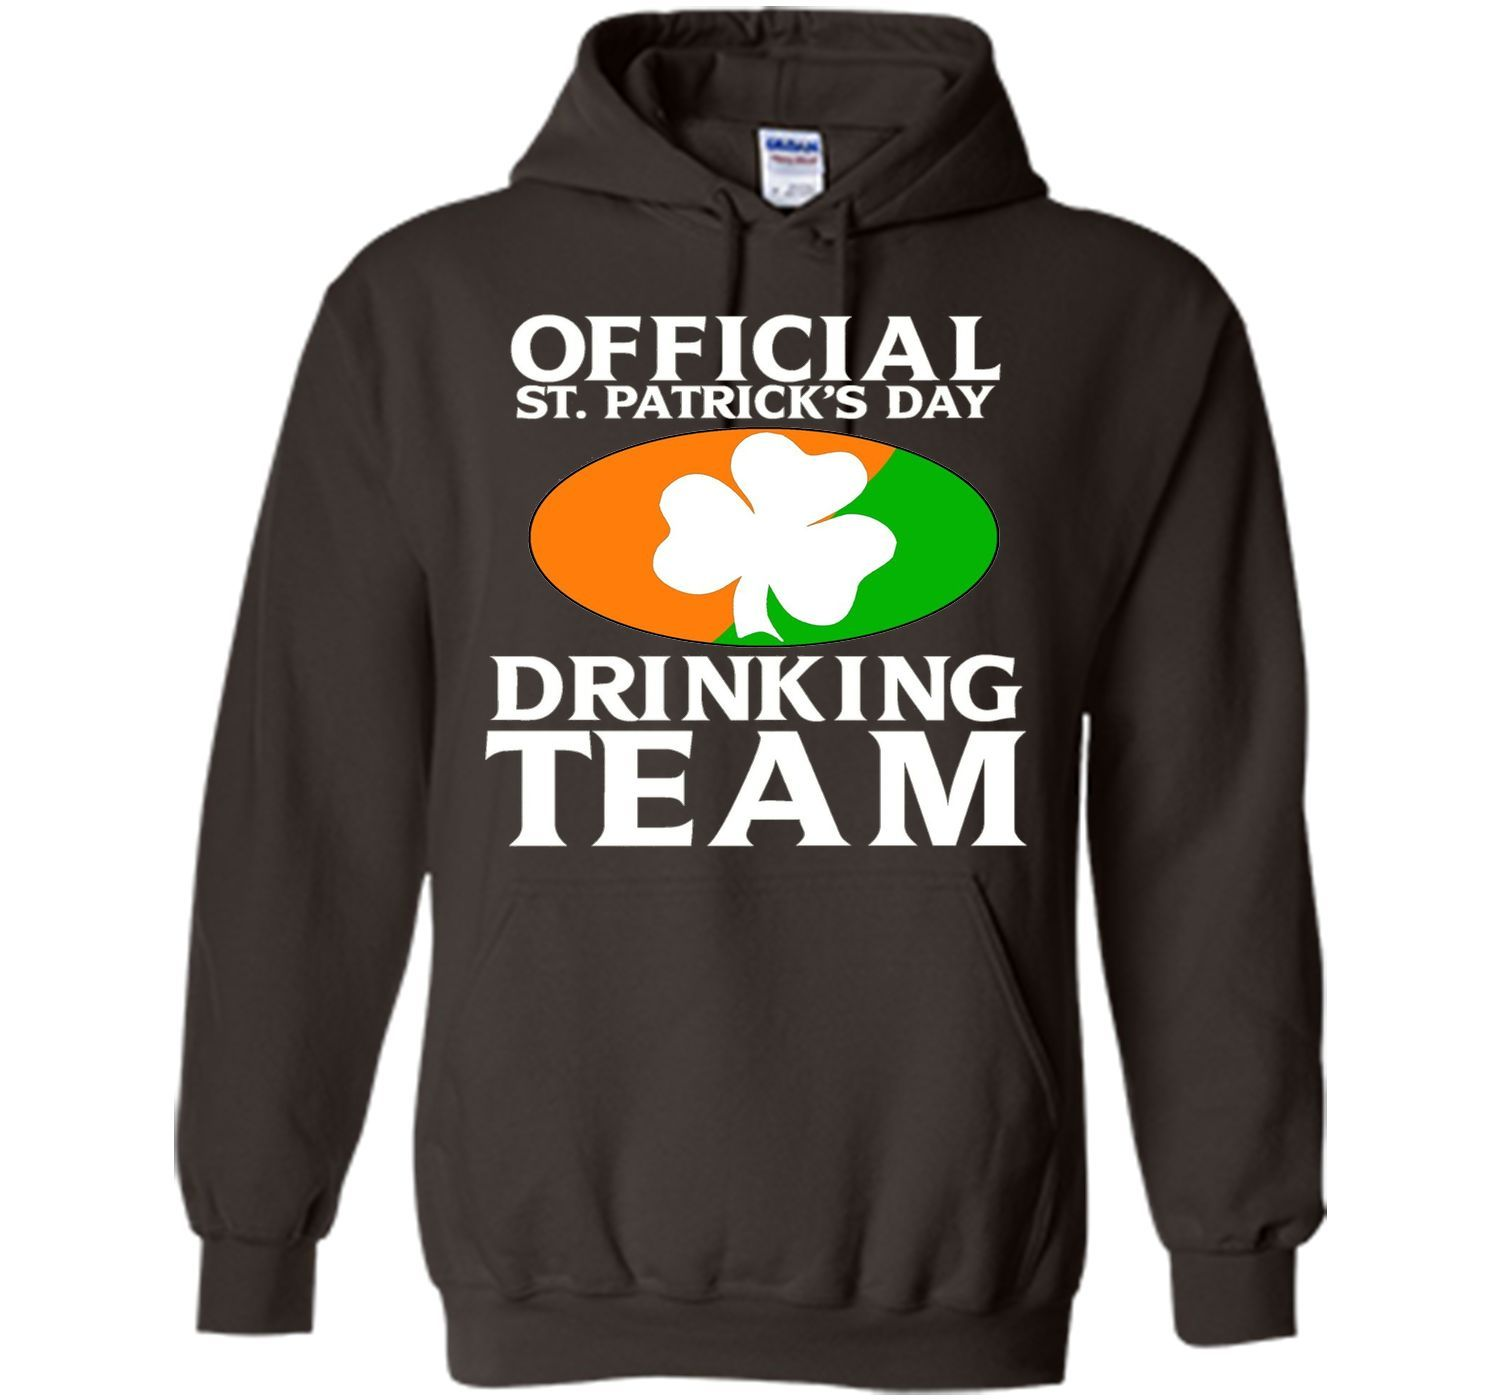 Official St. Patrick's Day Drinking Team Funny T-Shirt